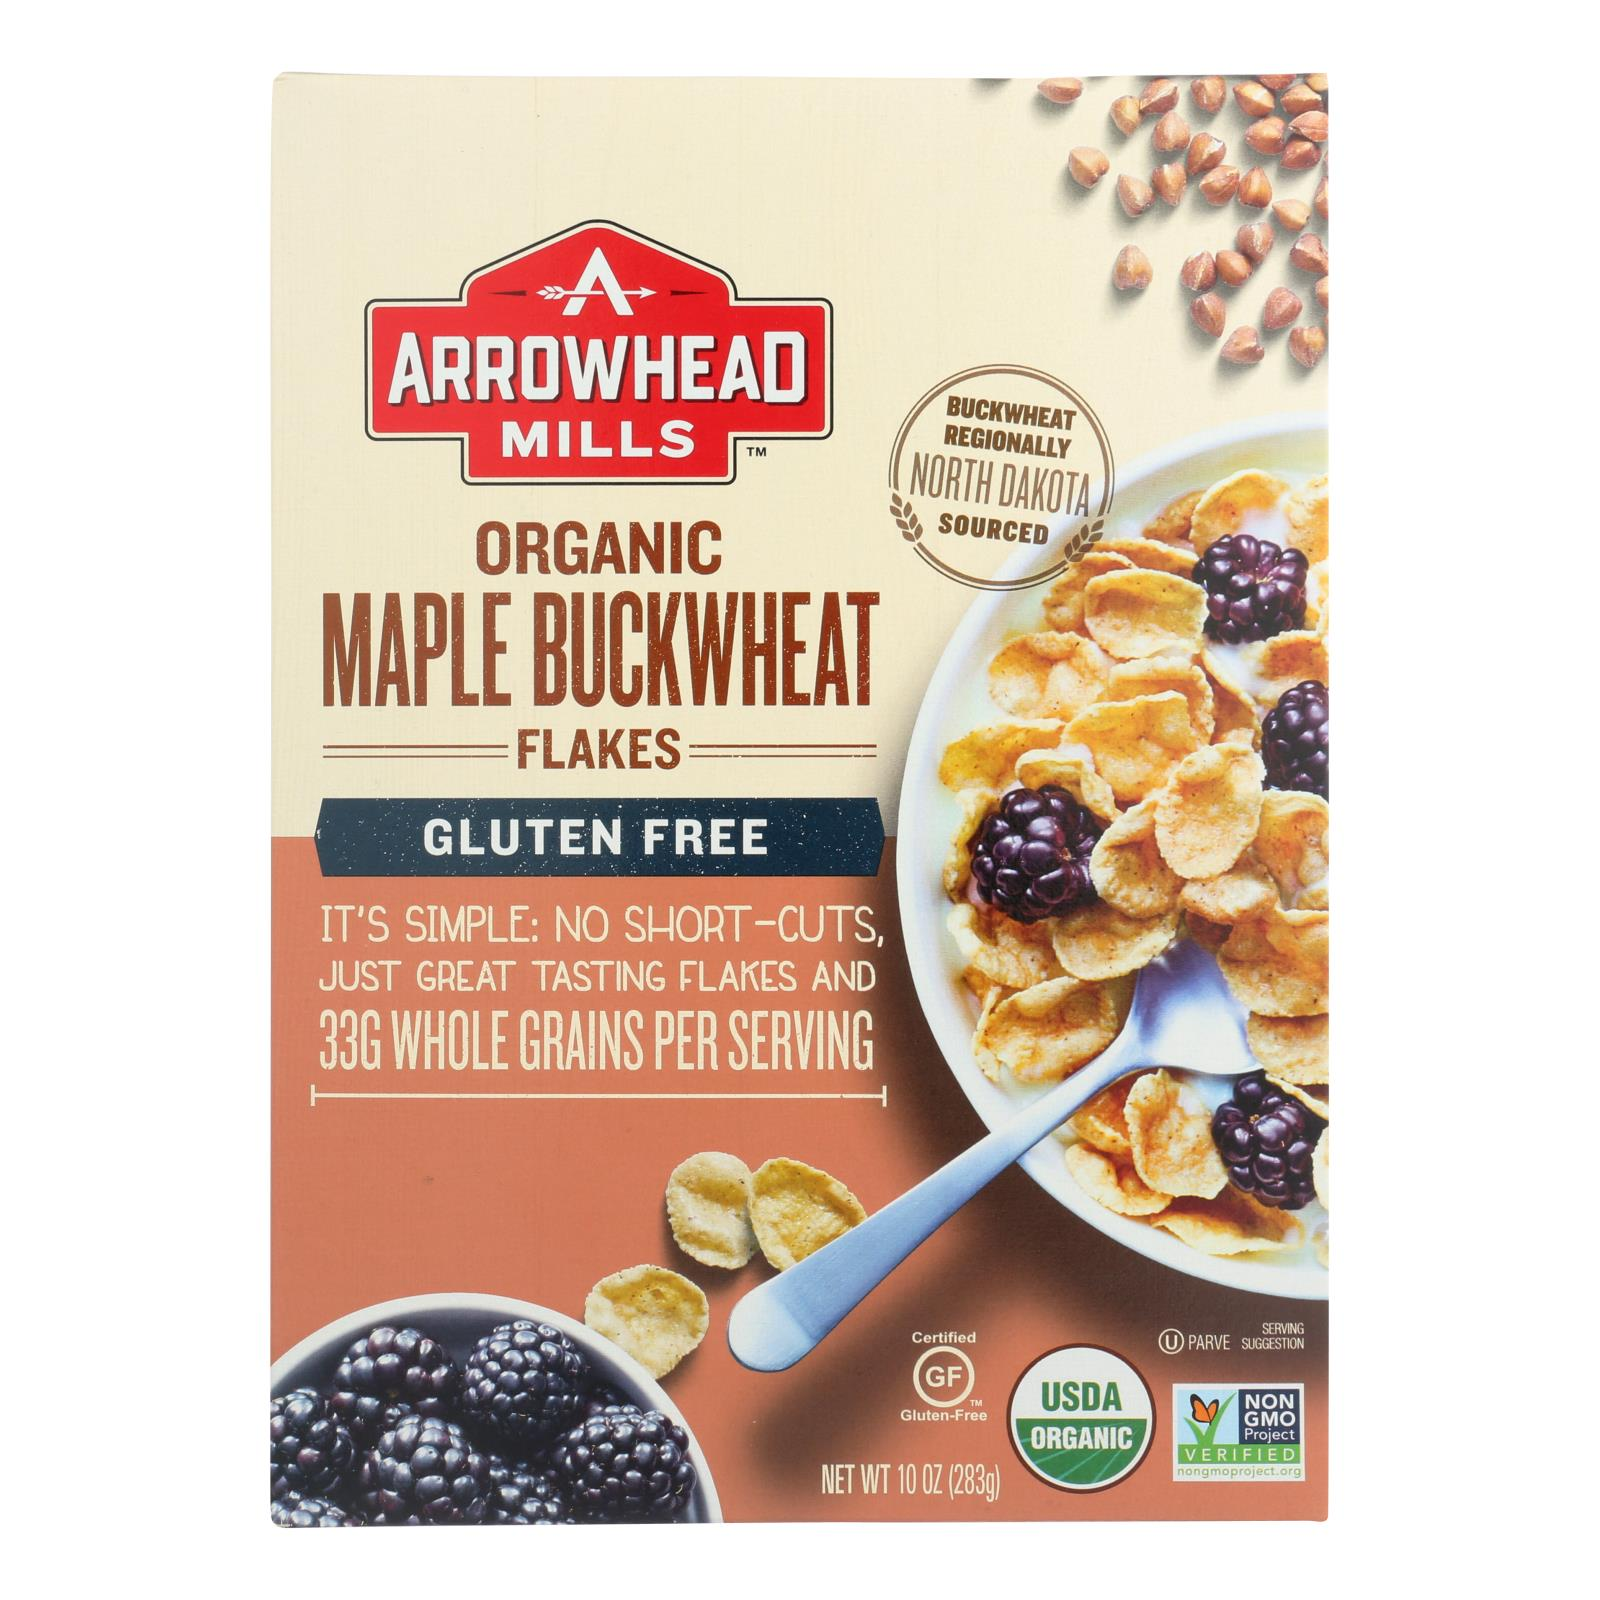 Arrowhead Mills - Cereal - Maple Buckwheat Flakes - Case of 6 - 10 oz.